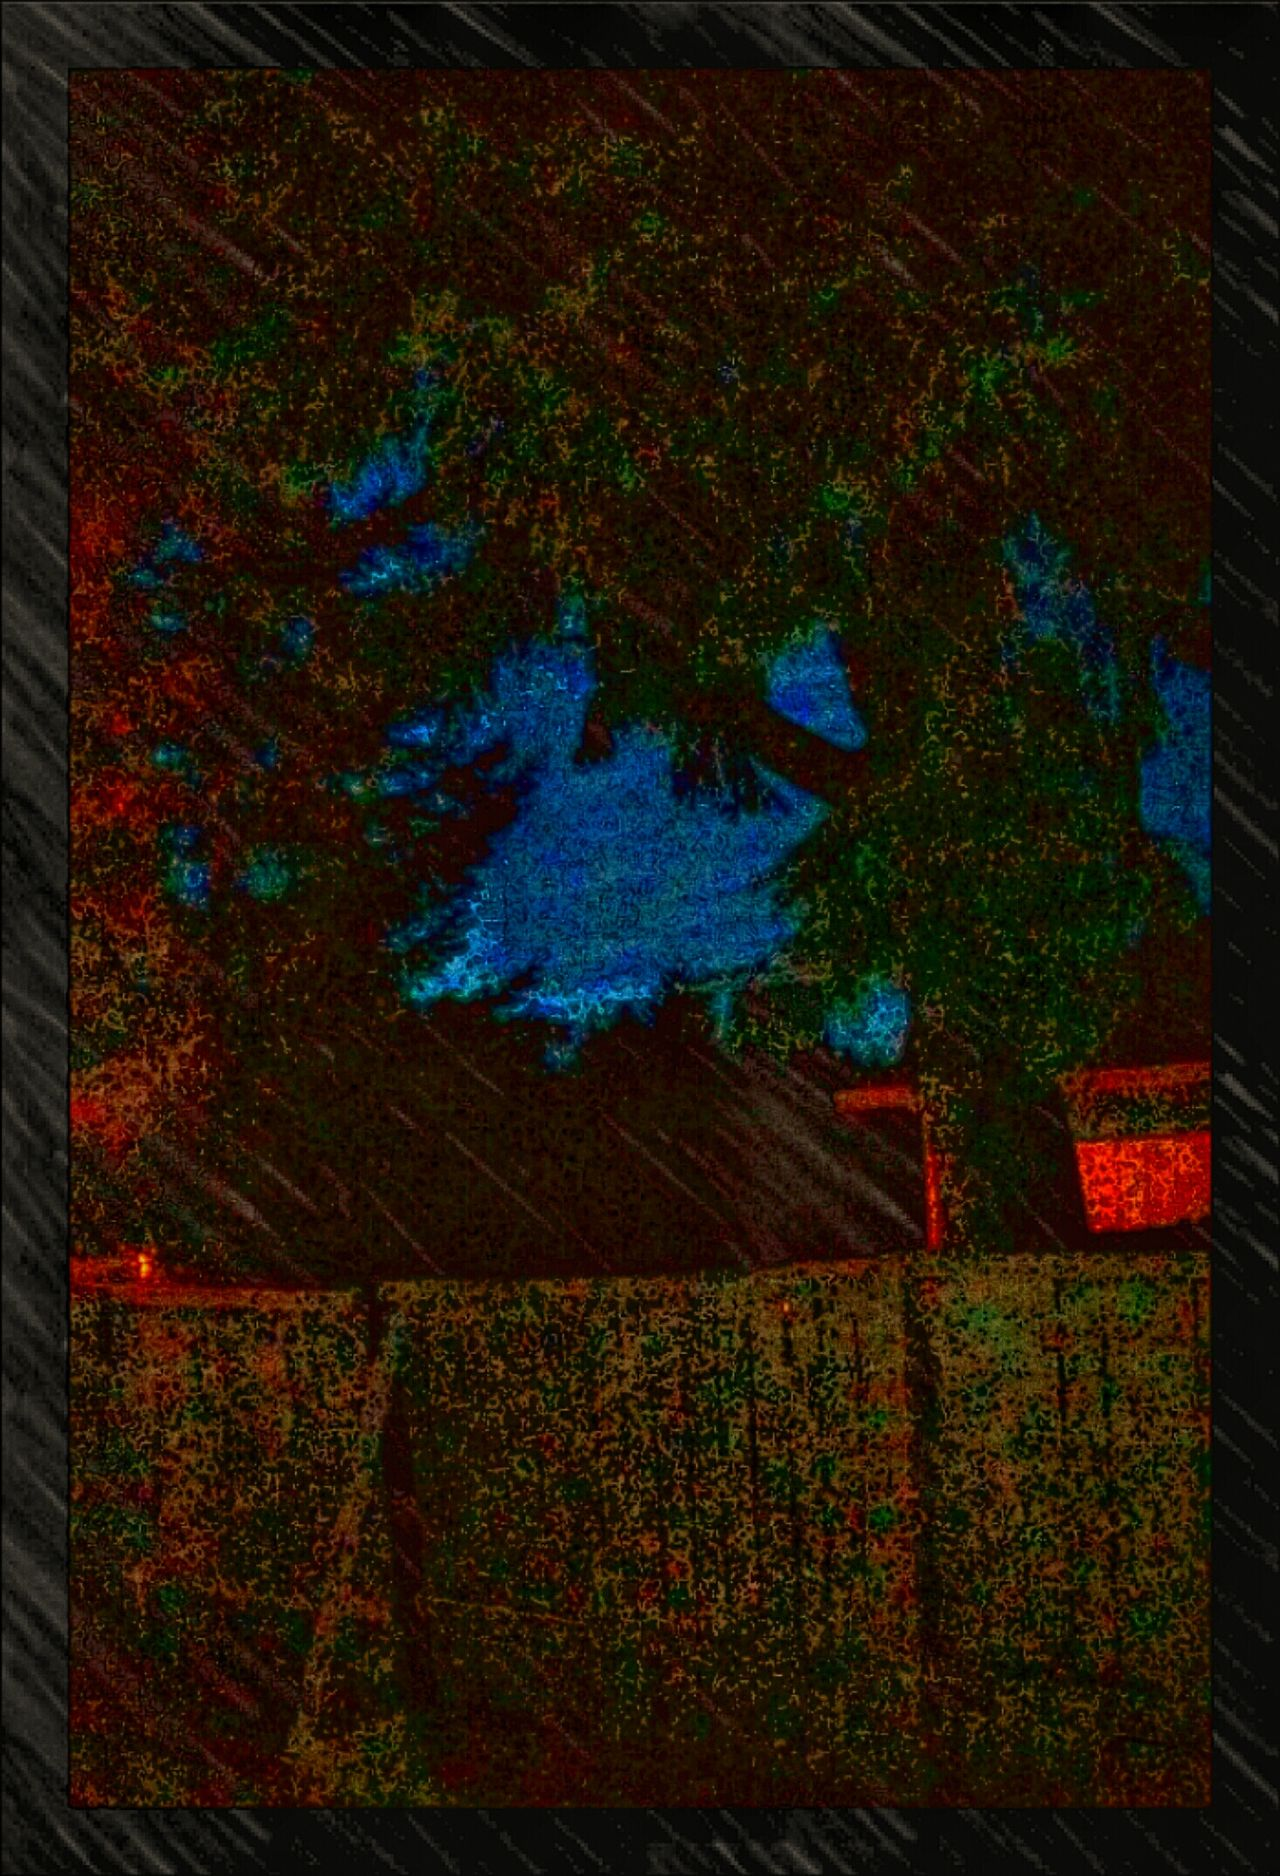 My Backyard Broken Fence Evening Photography Tree_collection  Sky And Trees Tree And Sky Relaxing Goodnight Sleeptight Check This Out Enjoying Life I❤oregon Lost In The Moment Lost In Time Oregonphotographer Sketched From Photo Edit Magic EyeEm Nature Lover EyeEm Gallery Taking Photos Hanging Out My Life Home Sweet Home Peaceful Evening Crickets